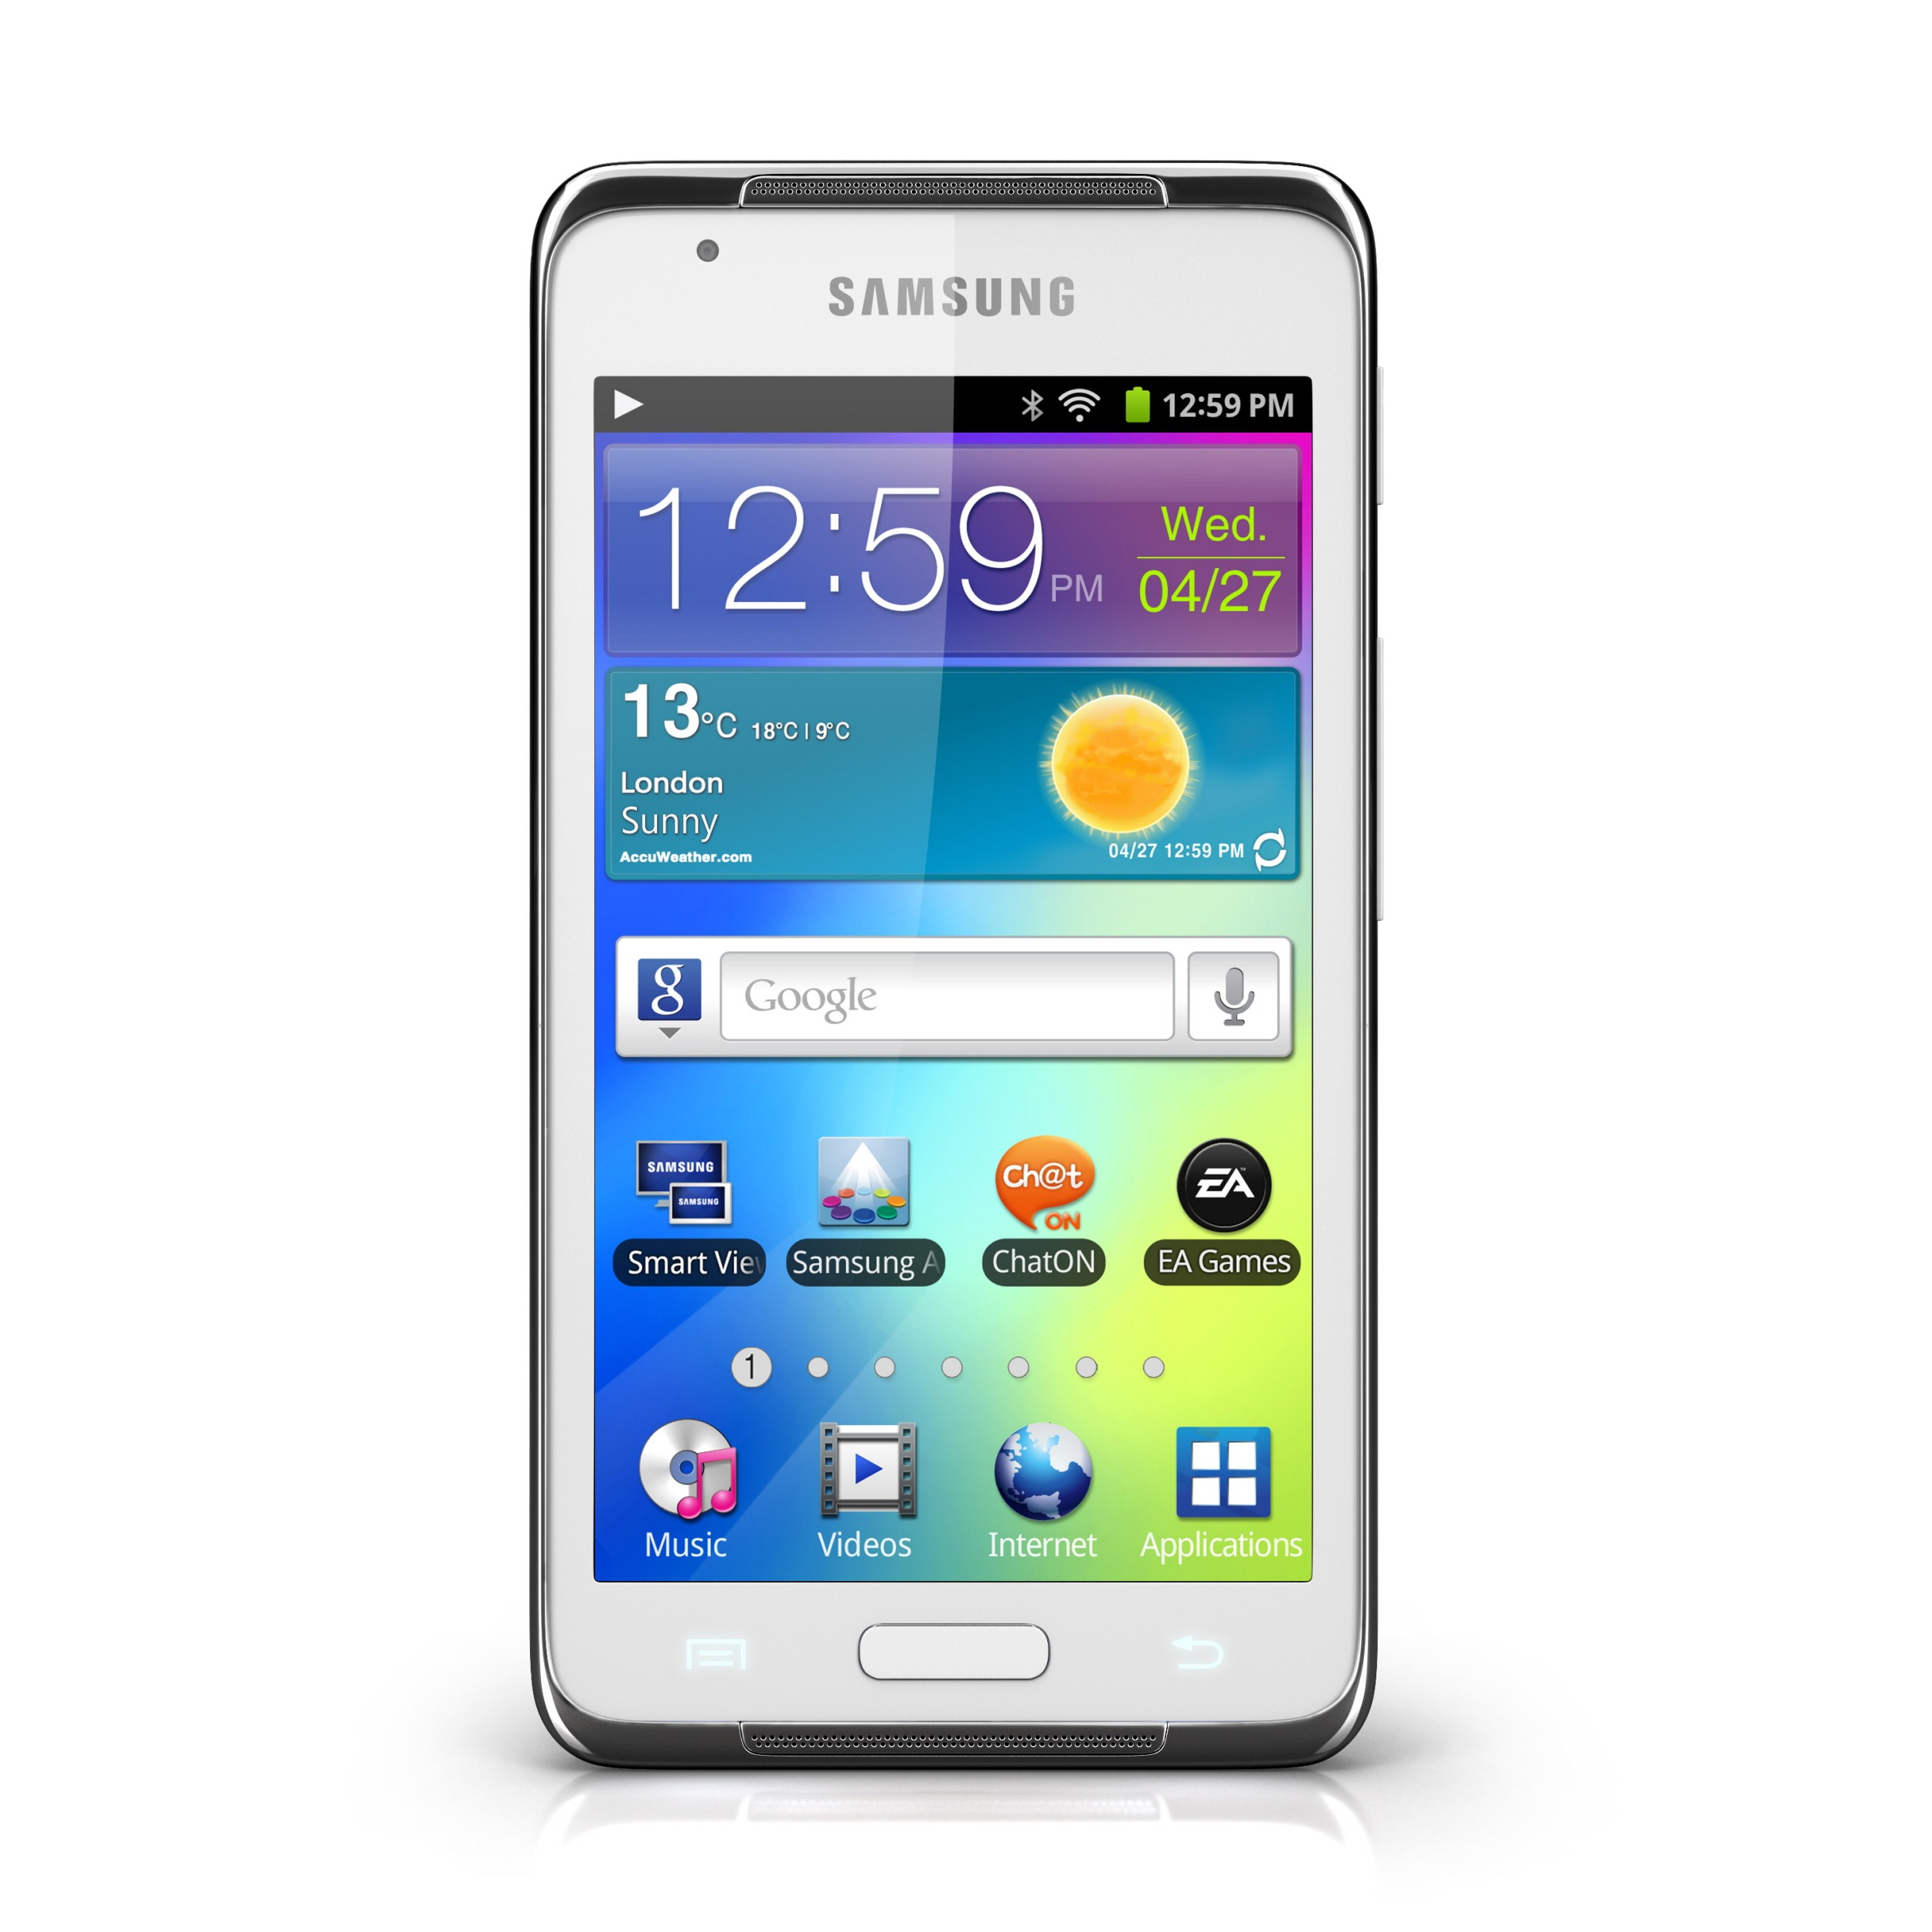 GALAXY-S-WiFi-4.2-Product-Image-21